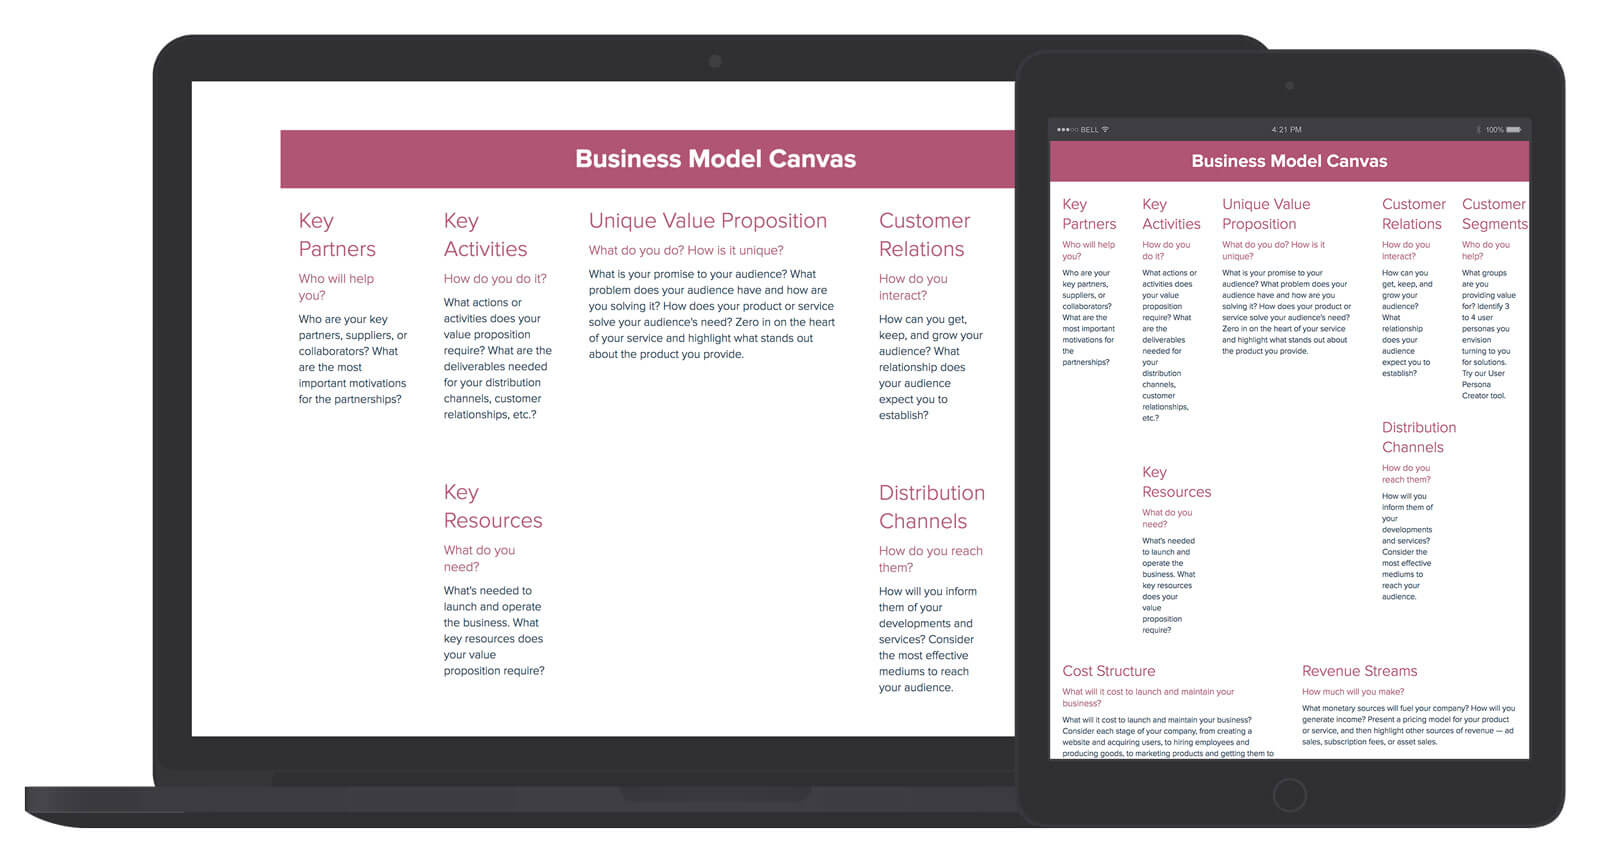 Business model canvas template and examples xtensio pin it on pinterest xtensio small business business model canvas friedricerecipe Image collections